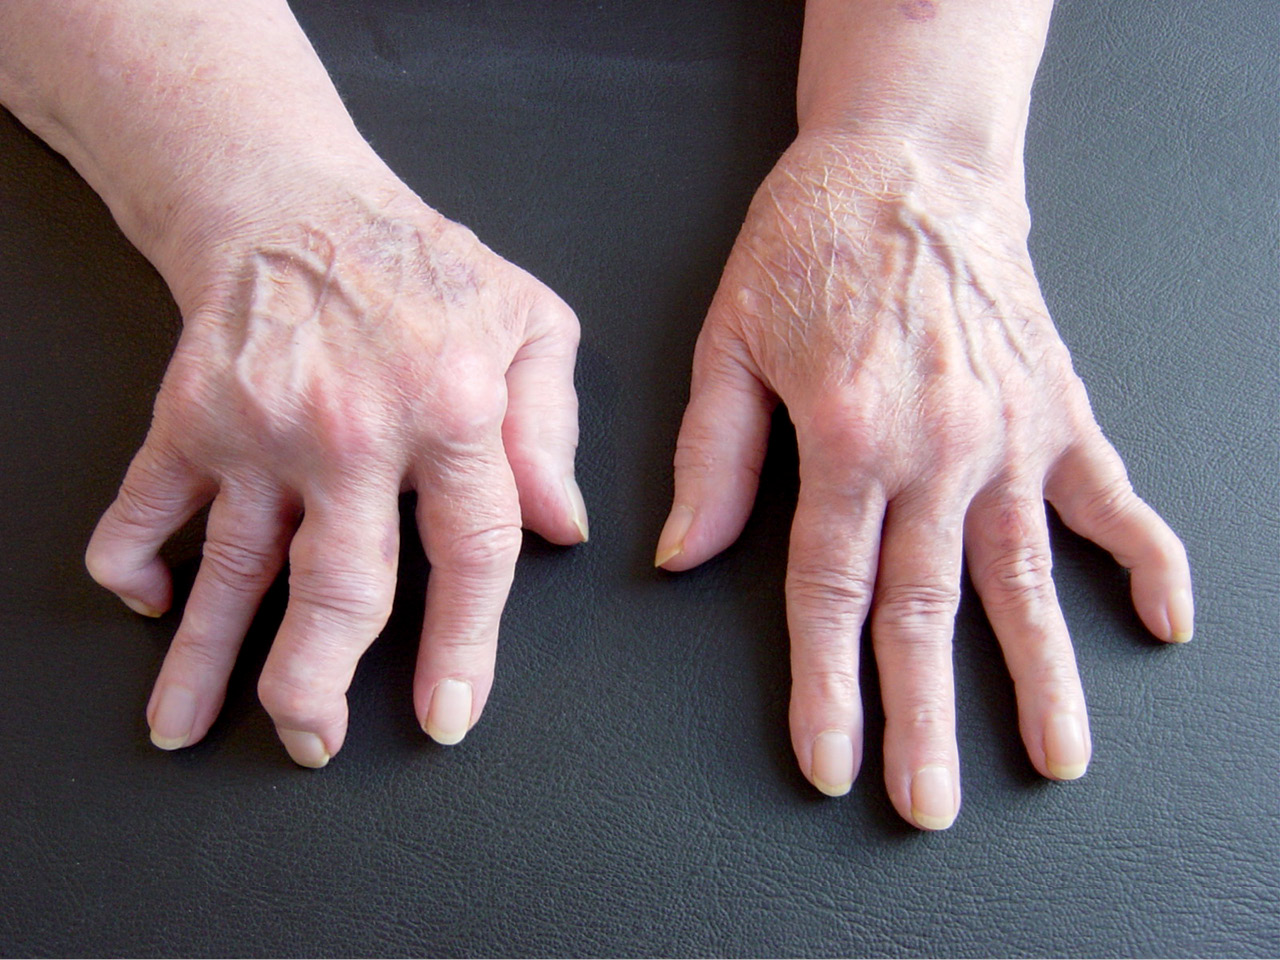 arthritis paper research rheumatoid Rheumatoid arthritis (ra, rheumatoid disease) is an autoimmune disorder and can affect many joints, other organs, and the whole body ra is often marked by flares and remissions or times when symptoms are more pronounced, then dissipate.